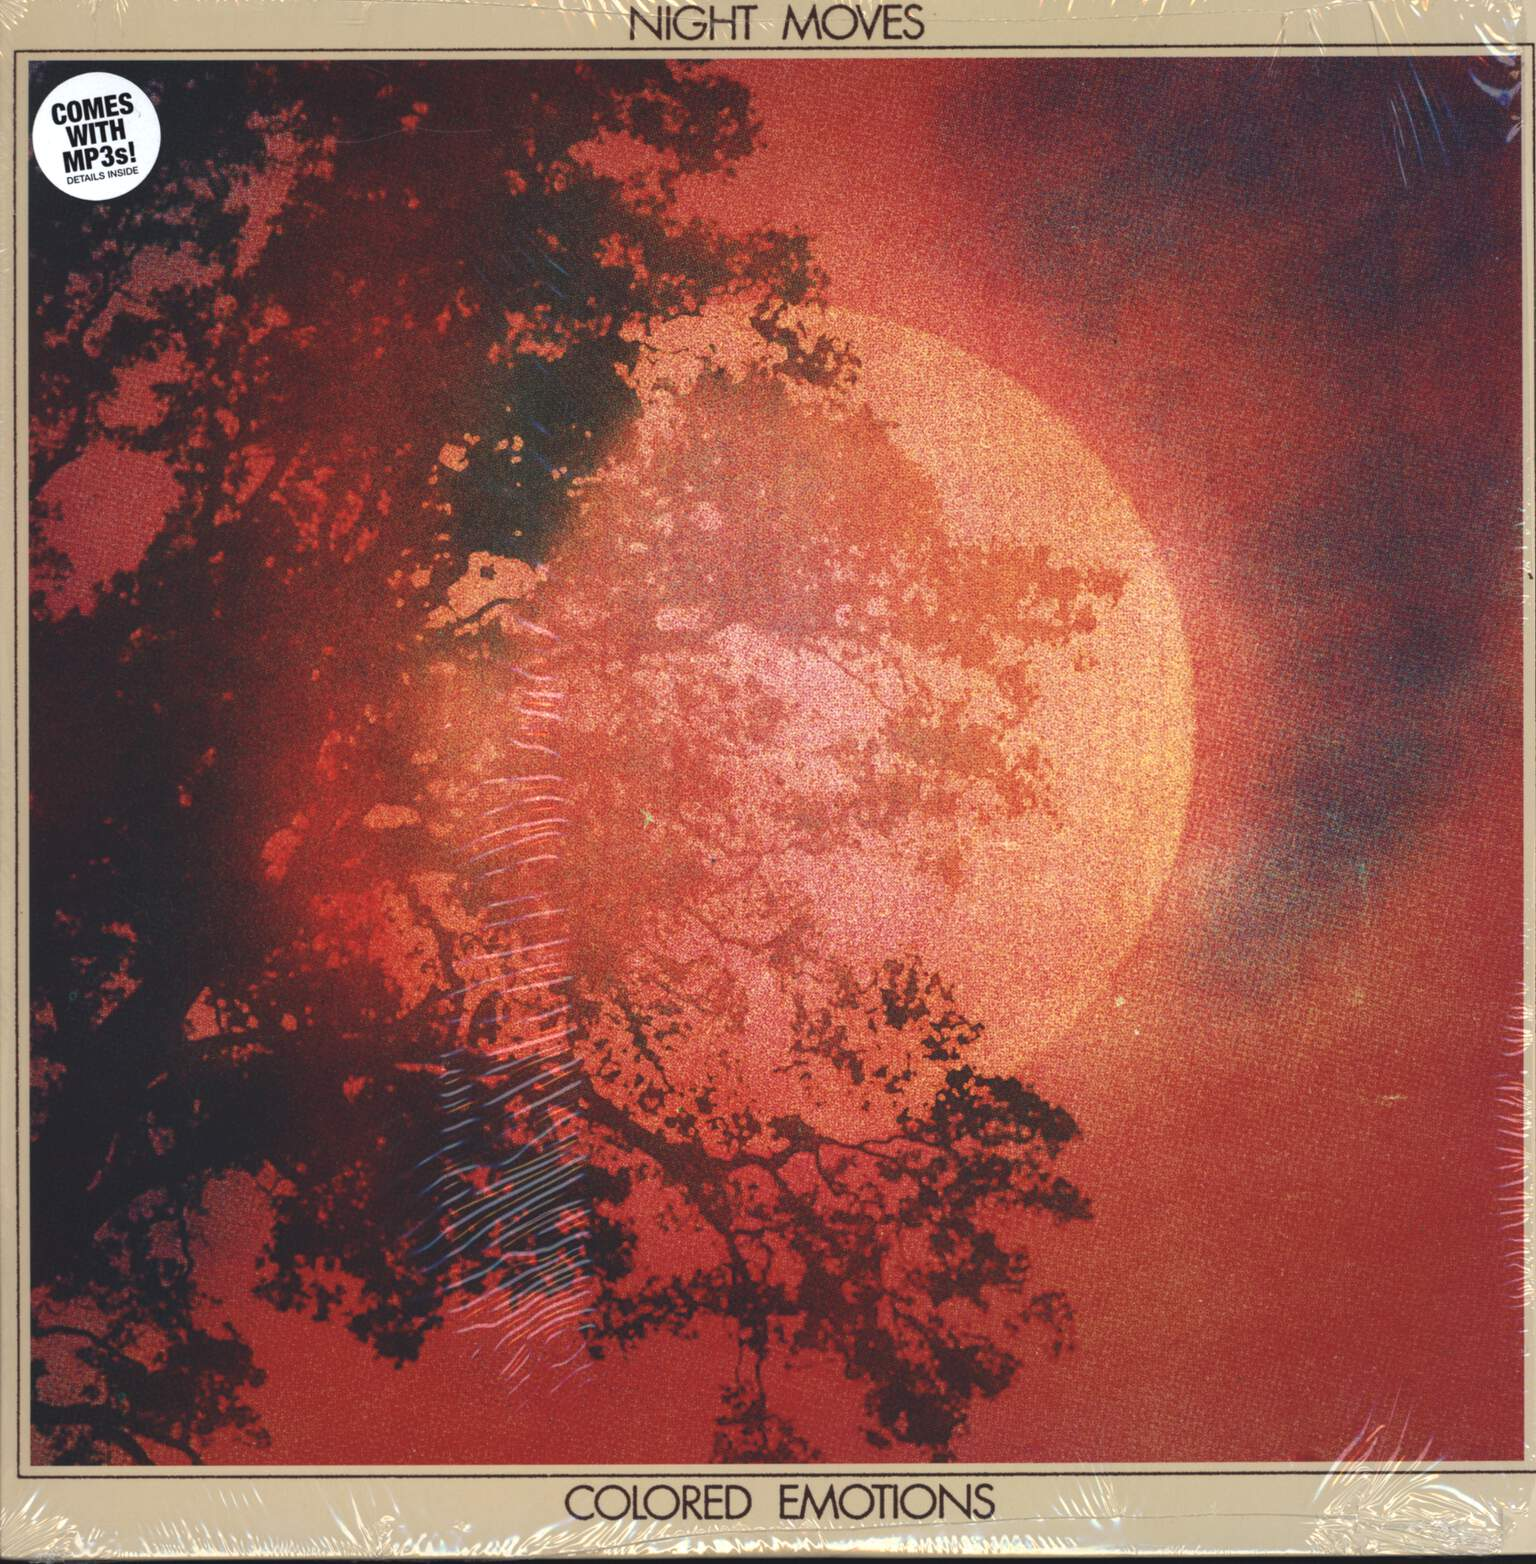 Night Moves: Colored Emotions, LP (Vinyl)